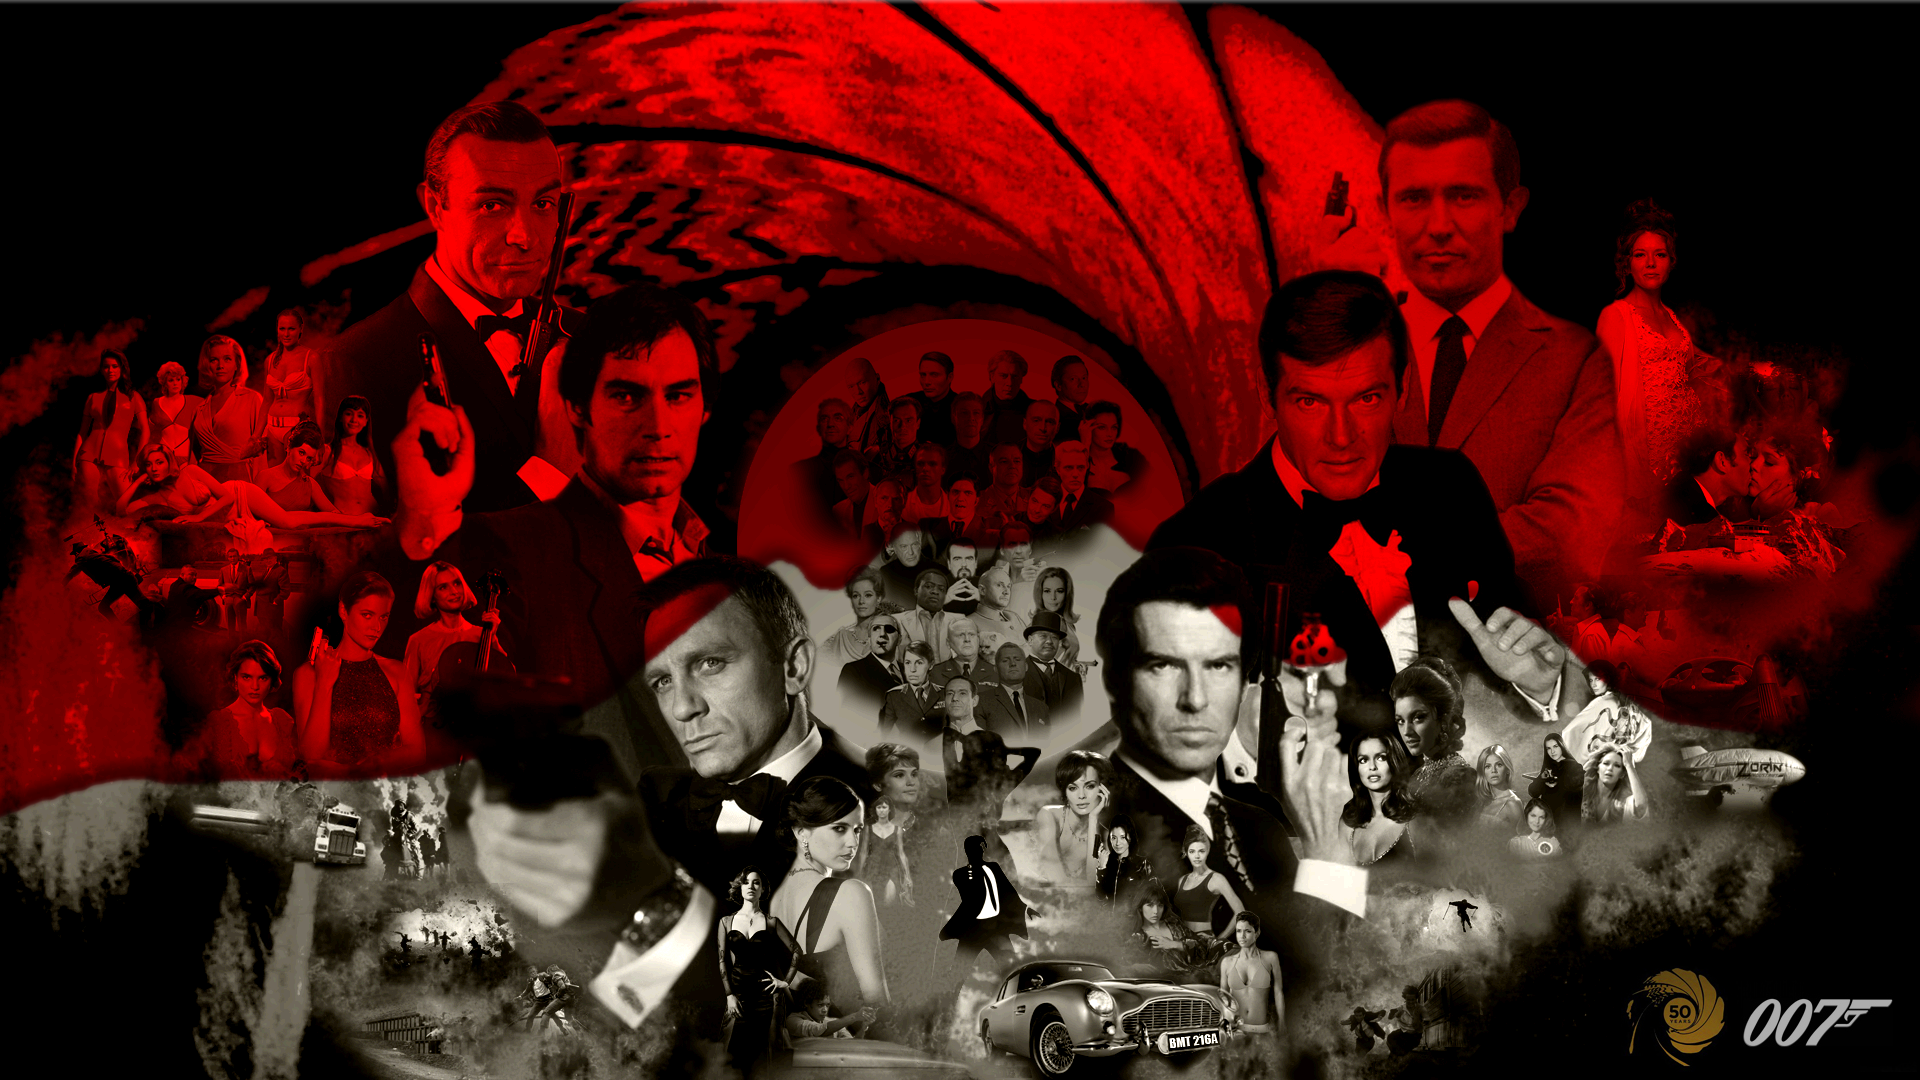 Wonderful Wallpaper Movie Collage - bond_50_anniversary_collage_by_the_hero_of_time28-d5kh5pa  Gallery_727755.png